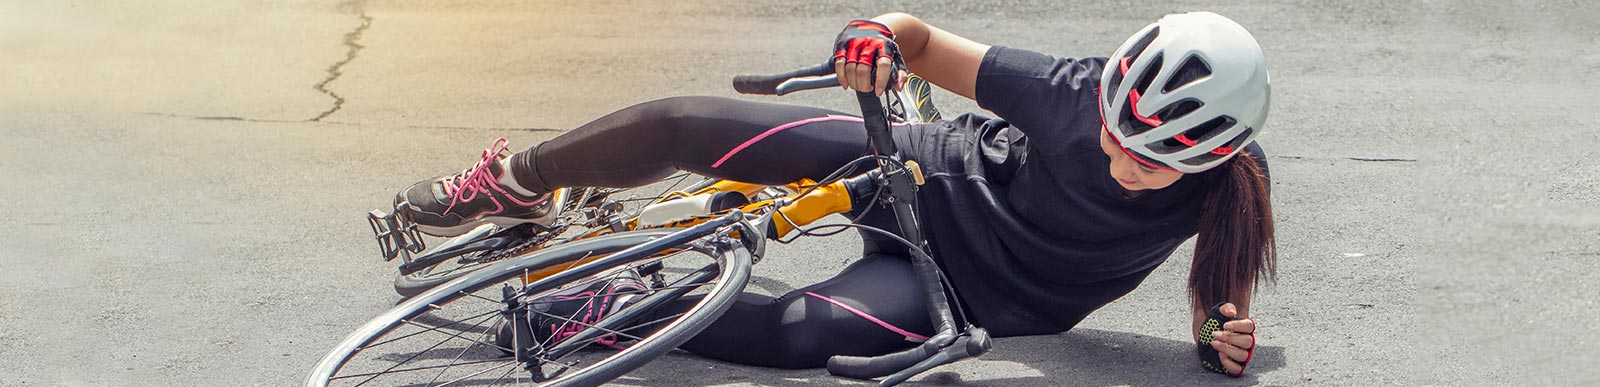 Cycling Rib Injuries